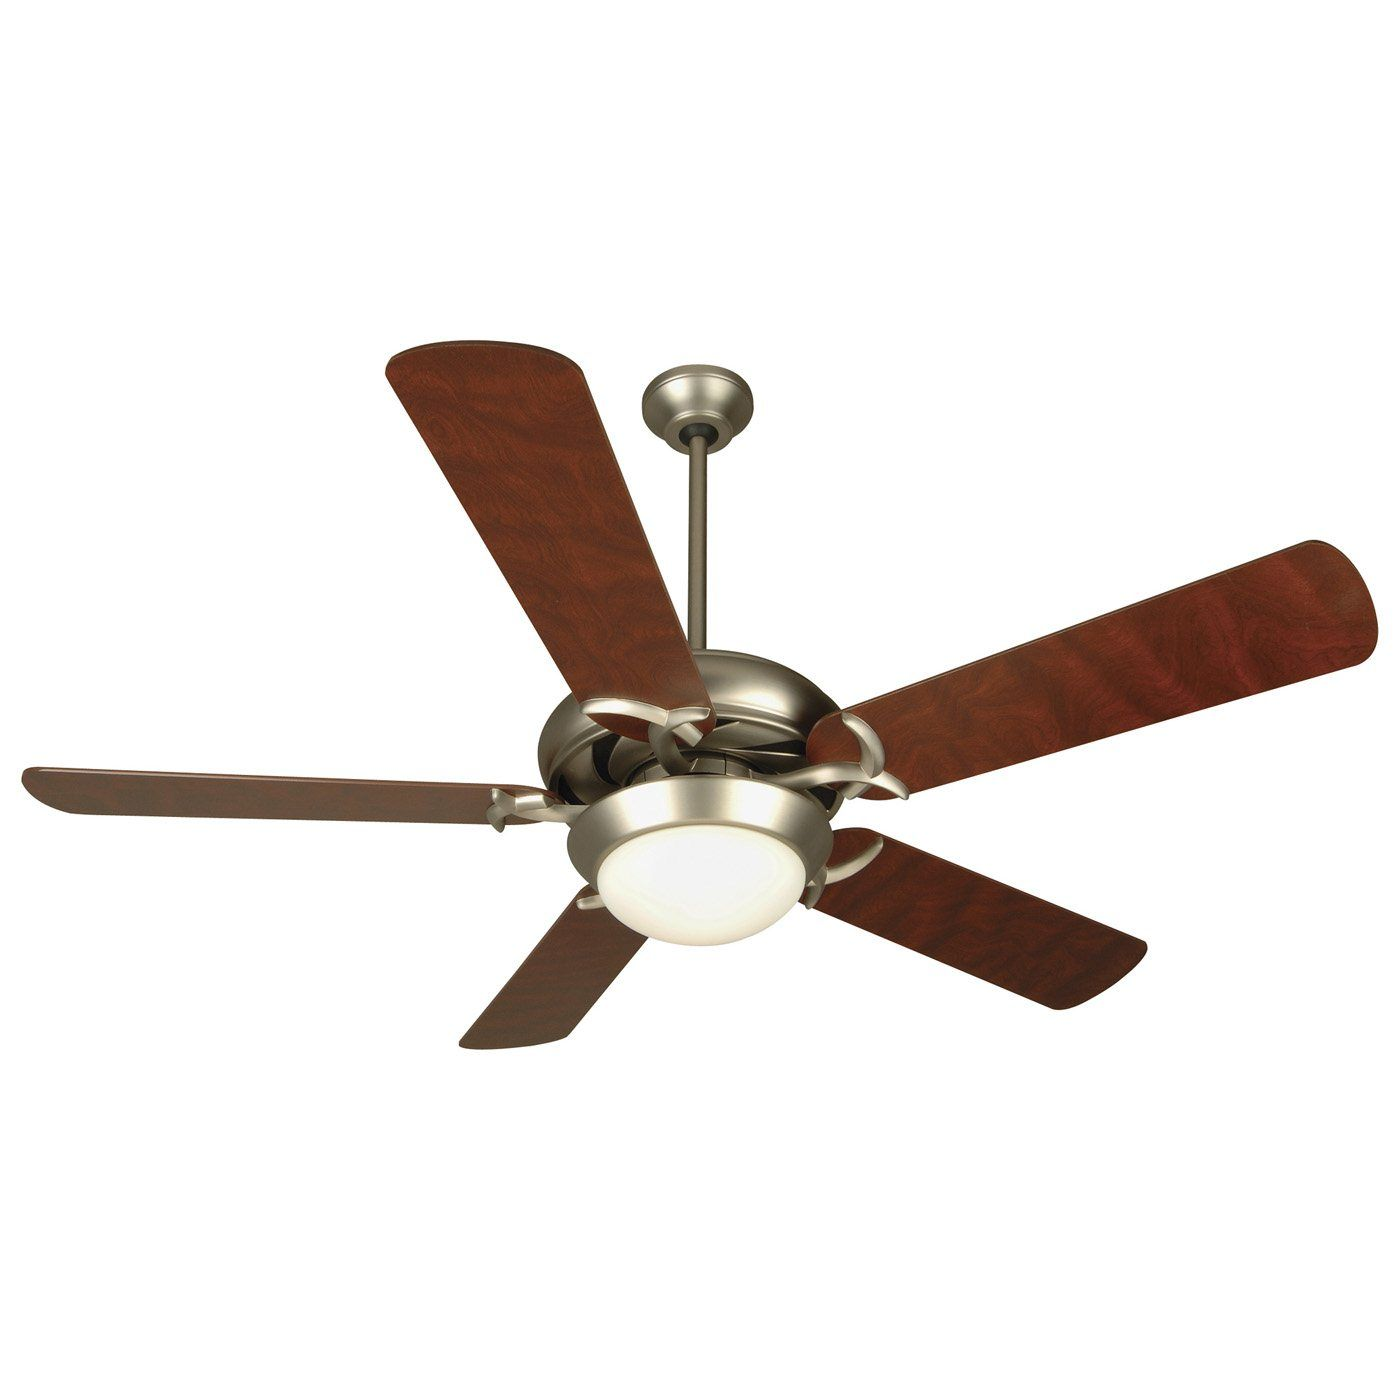 "Harbor Breeze 52"" Teolo Brushed Nickel Ceiling Fan Lowes $169"